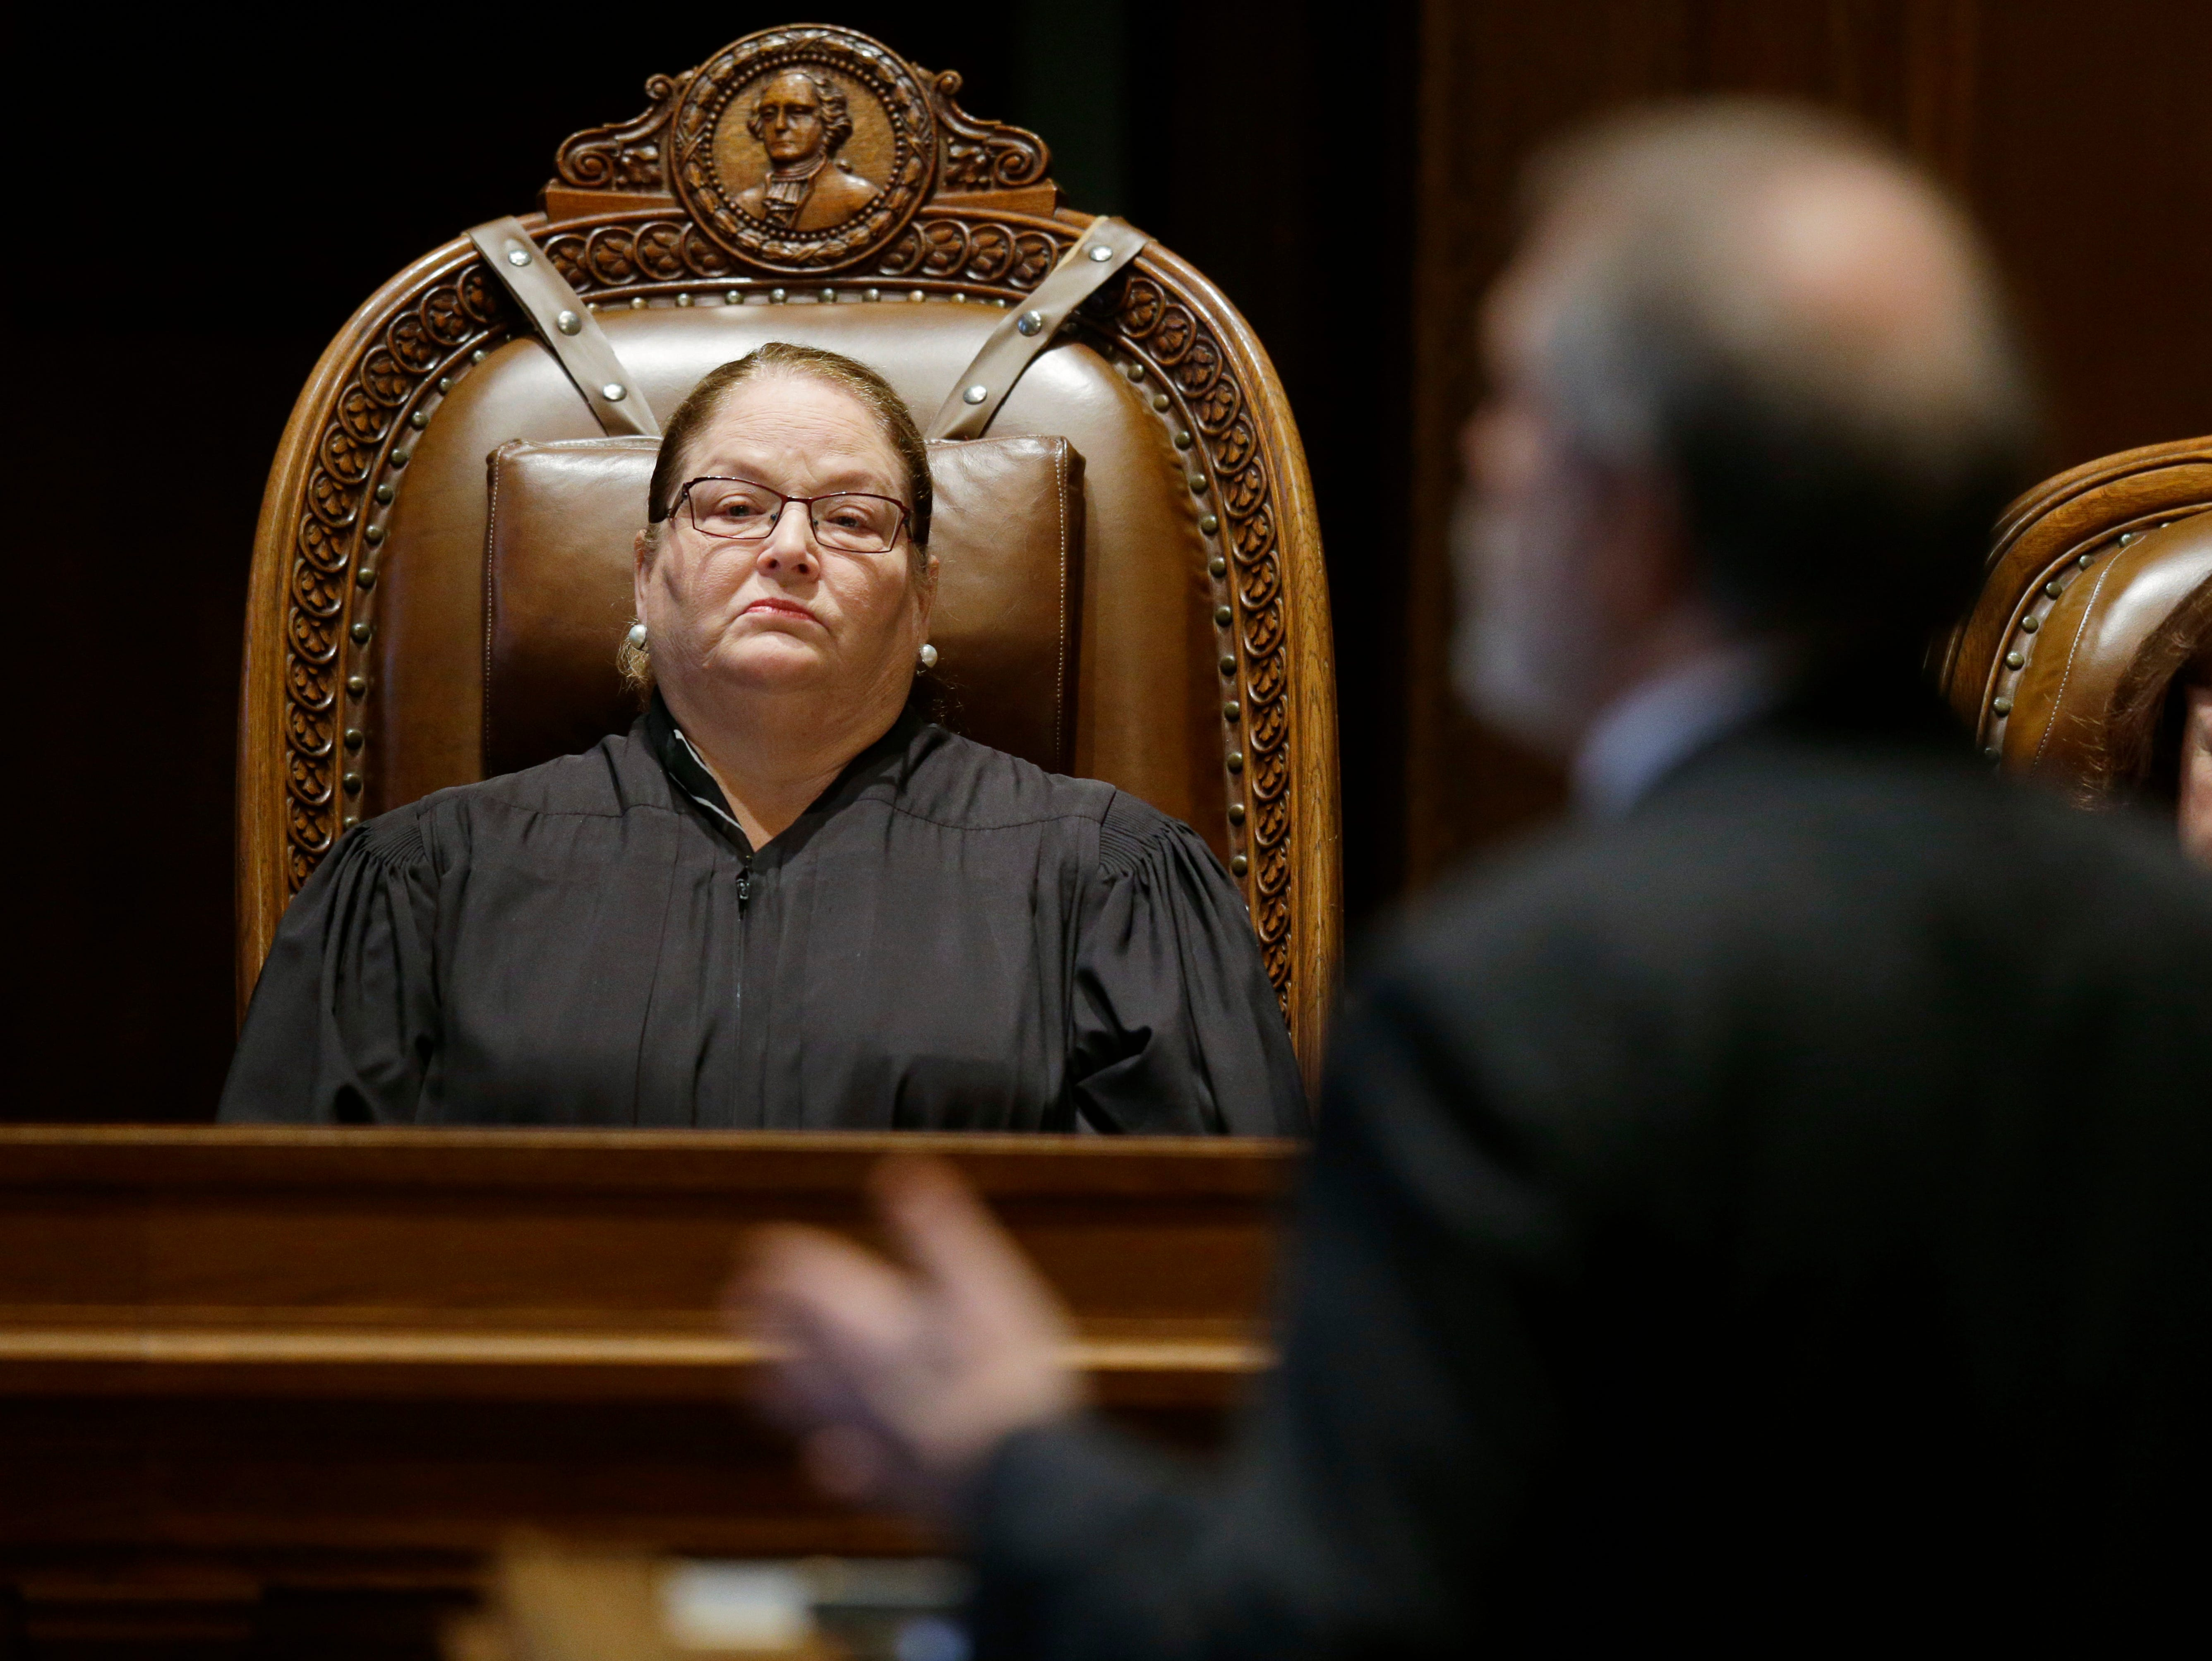 FILE - In this Oct. 24, 2017, file photo, Washington state Supreme Court Chief Justice Mary Fairhurst, left, listens as Alan Copsey, right, deputy solicitor general in the Washington state attorney general's office, speaks during a Washington Supreme Court hearing in Olympia, Wash., addressing the issue of education funding. In June 2018, the Court said lawmakers had successfully finalized the long-running case on state funding of basic education and that the high court would no longer retain jurisdiction in the case, putting it among the state's top news stories of 2018. (AP Photo/Ted S. Warren, File)